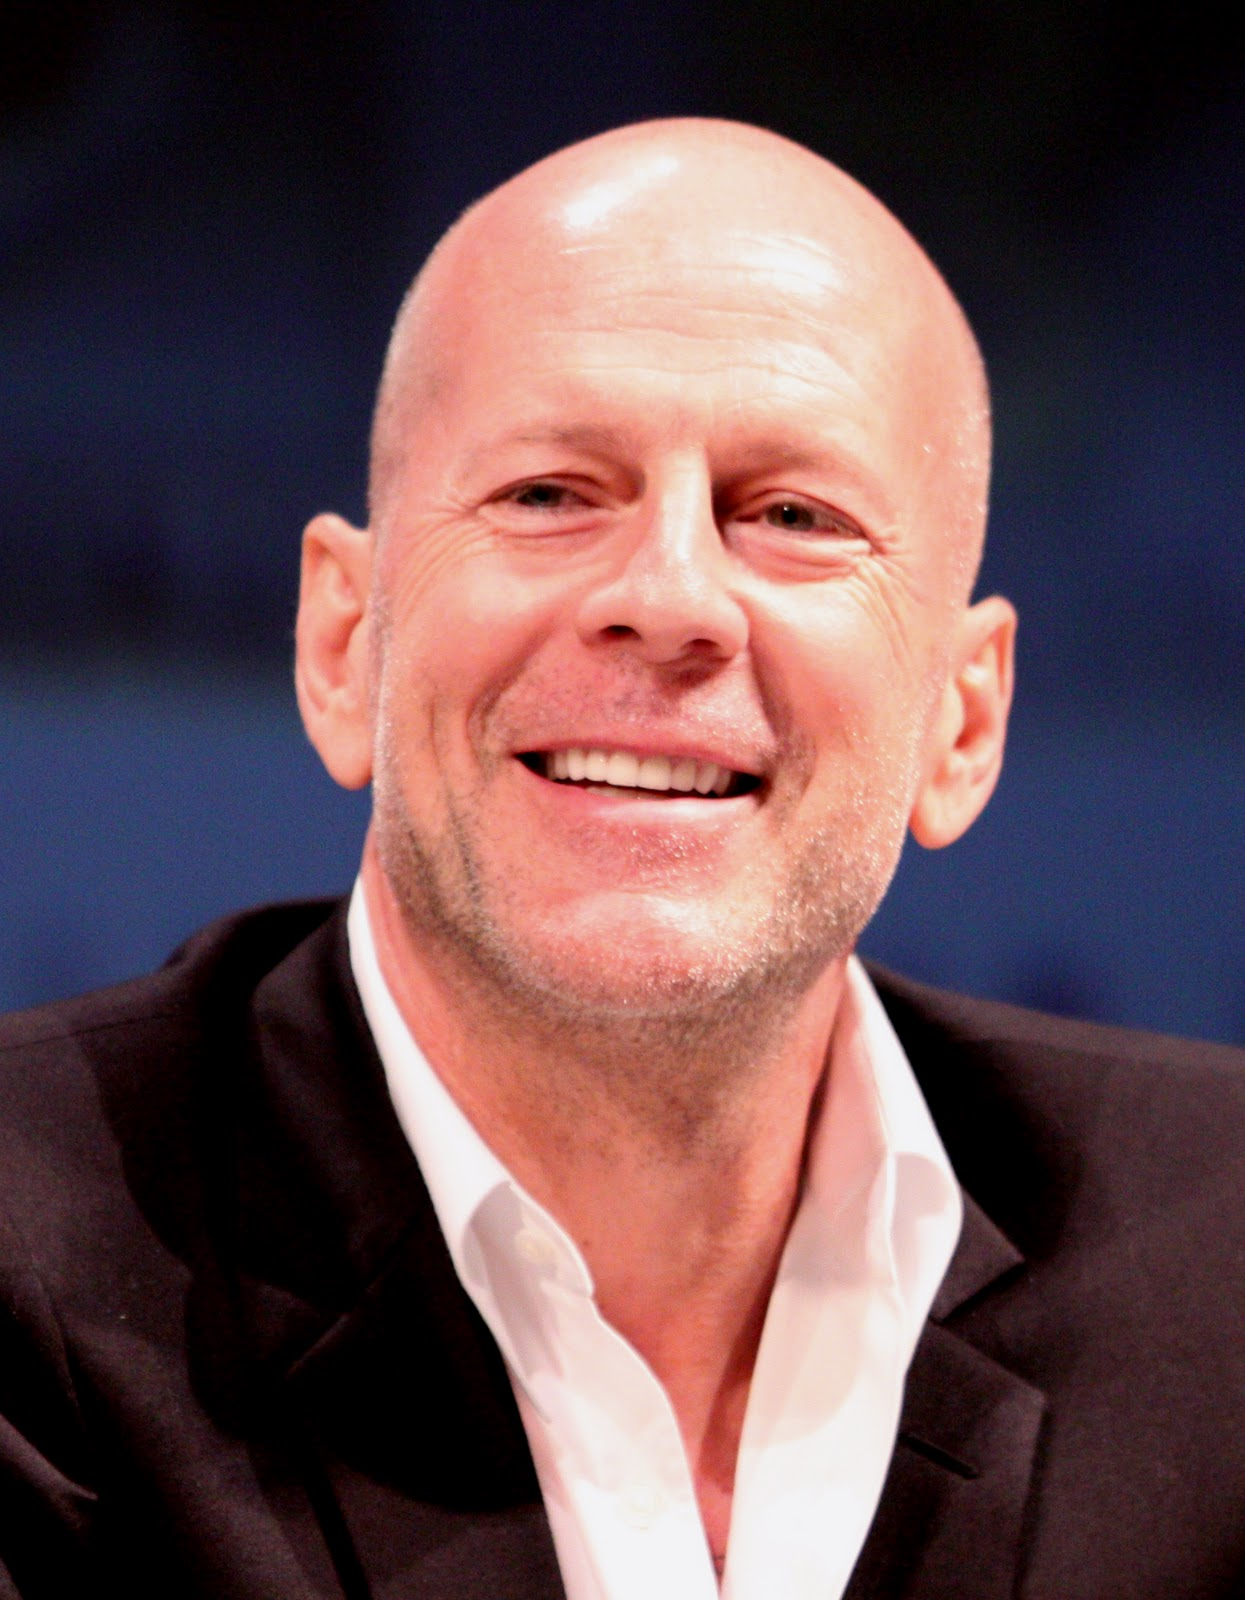 cea0328071e863 Born Walter Bruce Willison on March 19, 1955, in West Germany, Bruce  Willis's career was launched when he played wisecracking David Addison on  TV's ...